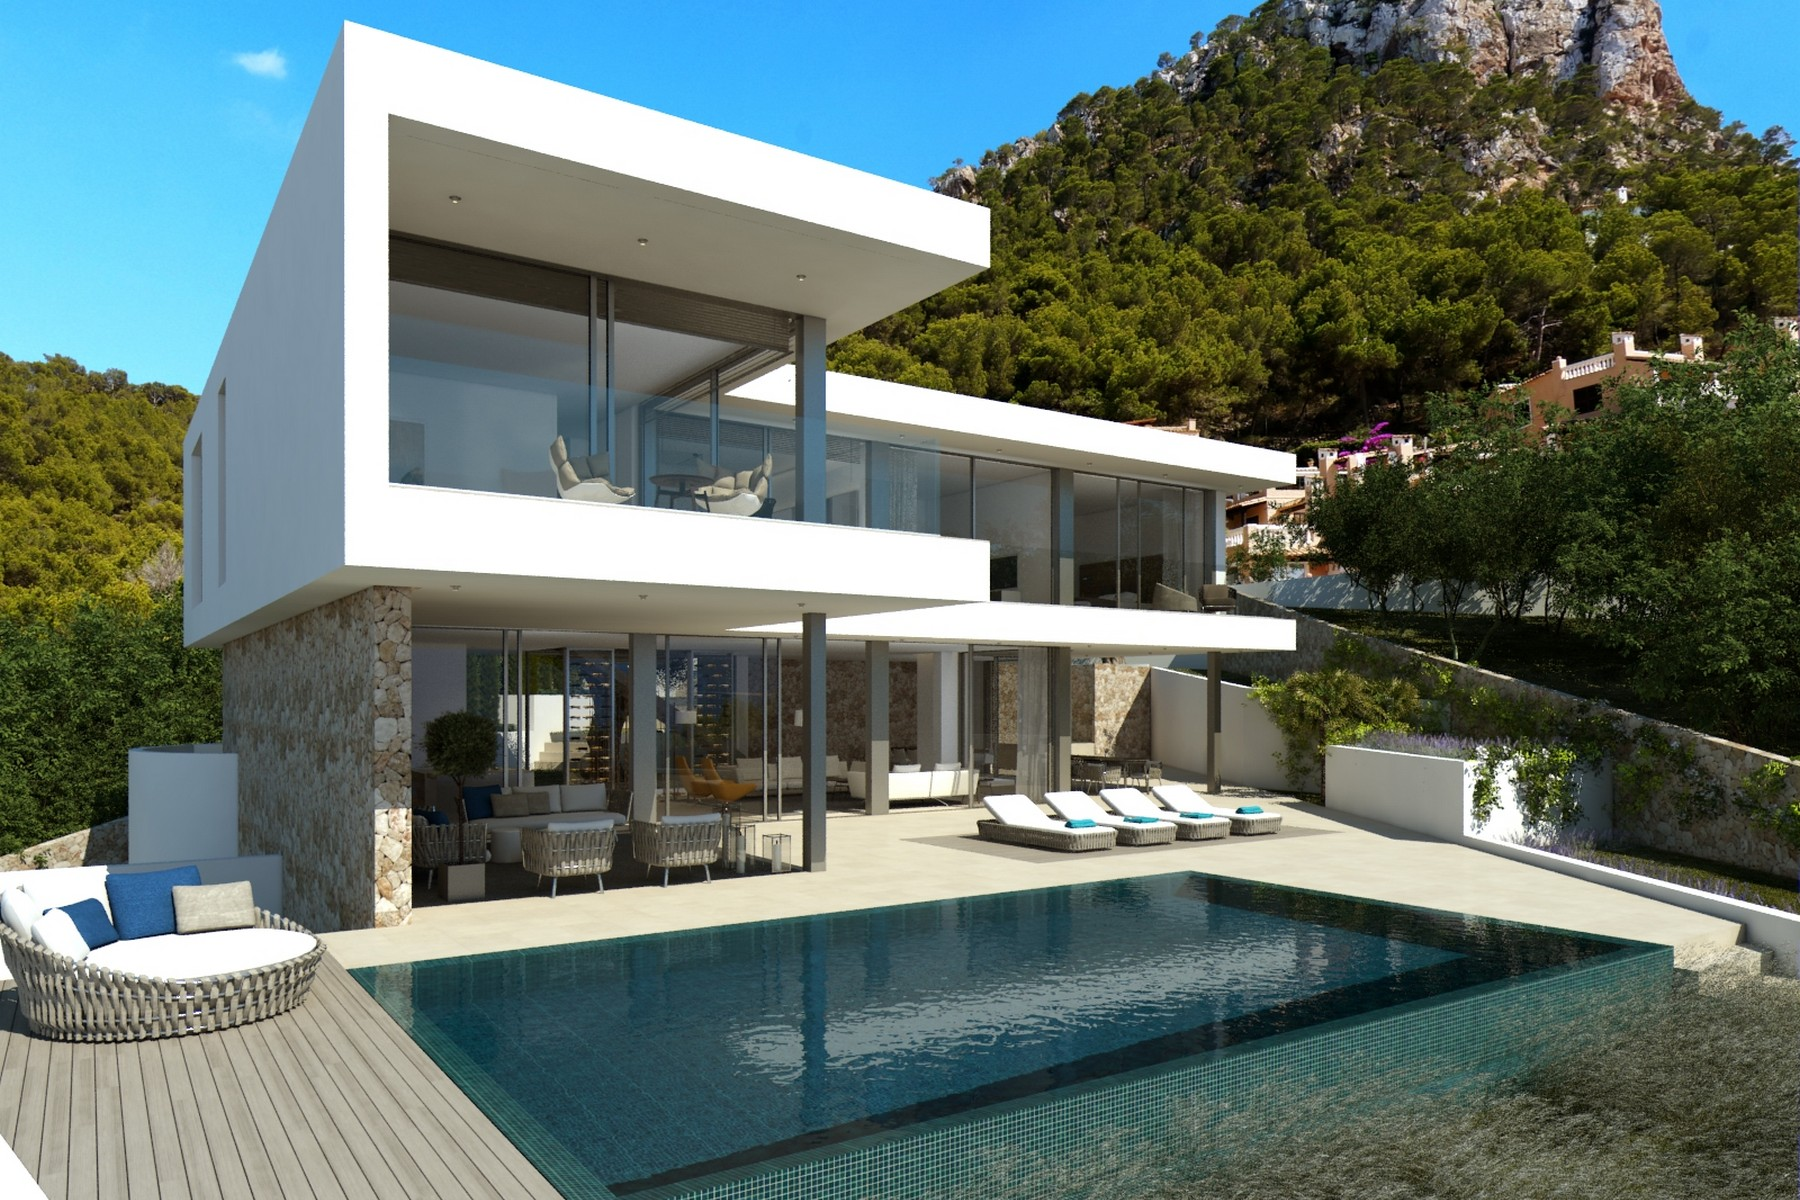 Tek Ailelik Ev için Satış at New build villa with sea views in Port Andratx Port Andratx, Mallorca, 07157 Ispanya